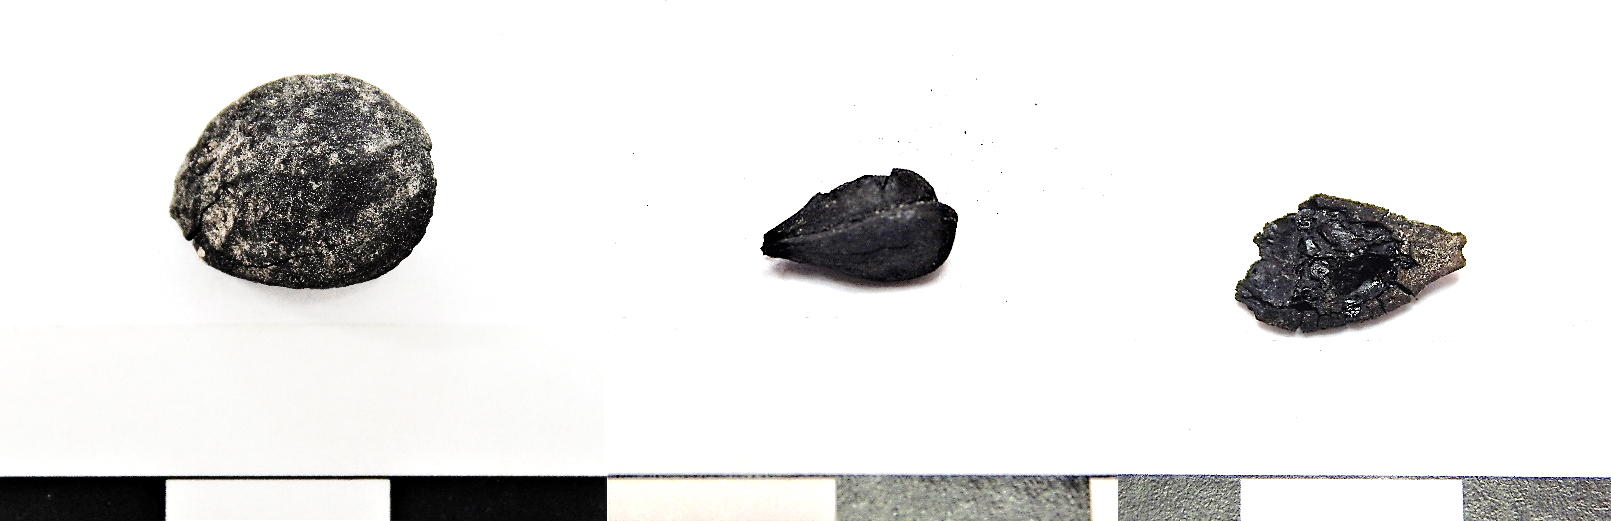 figure 3.  sample of carbonized fruit seeds from feature 341. left to right: plum (prunus domestica), apple or pear (malus sp.), squash (cucurbita sp.) 1 cm scale.